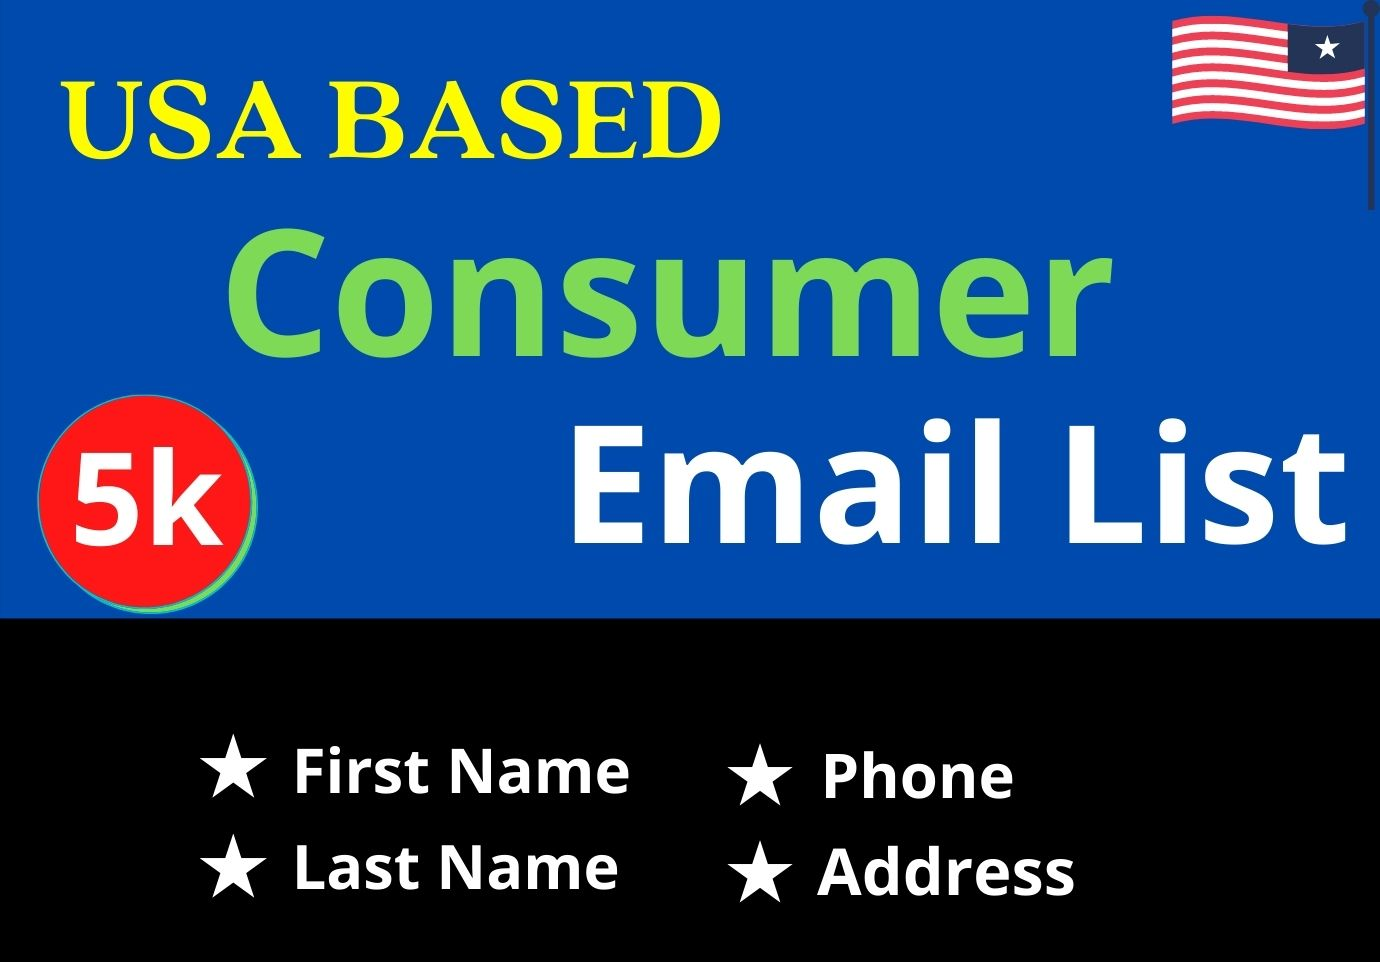 I will give you Consumer Valid Email List